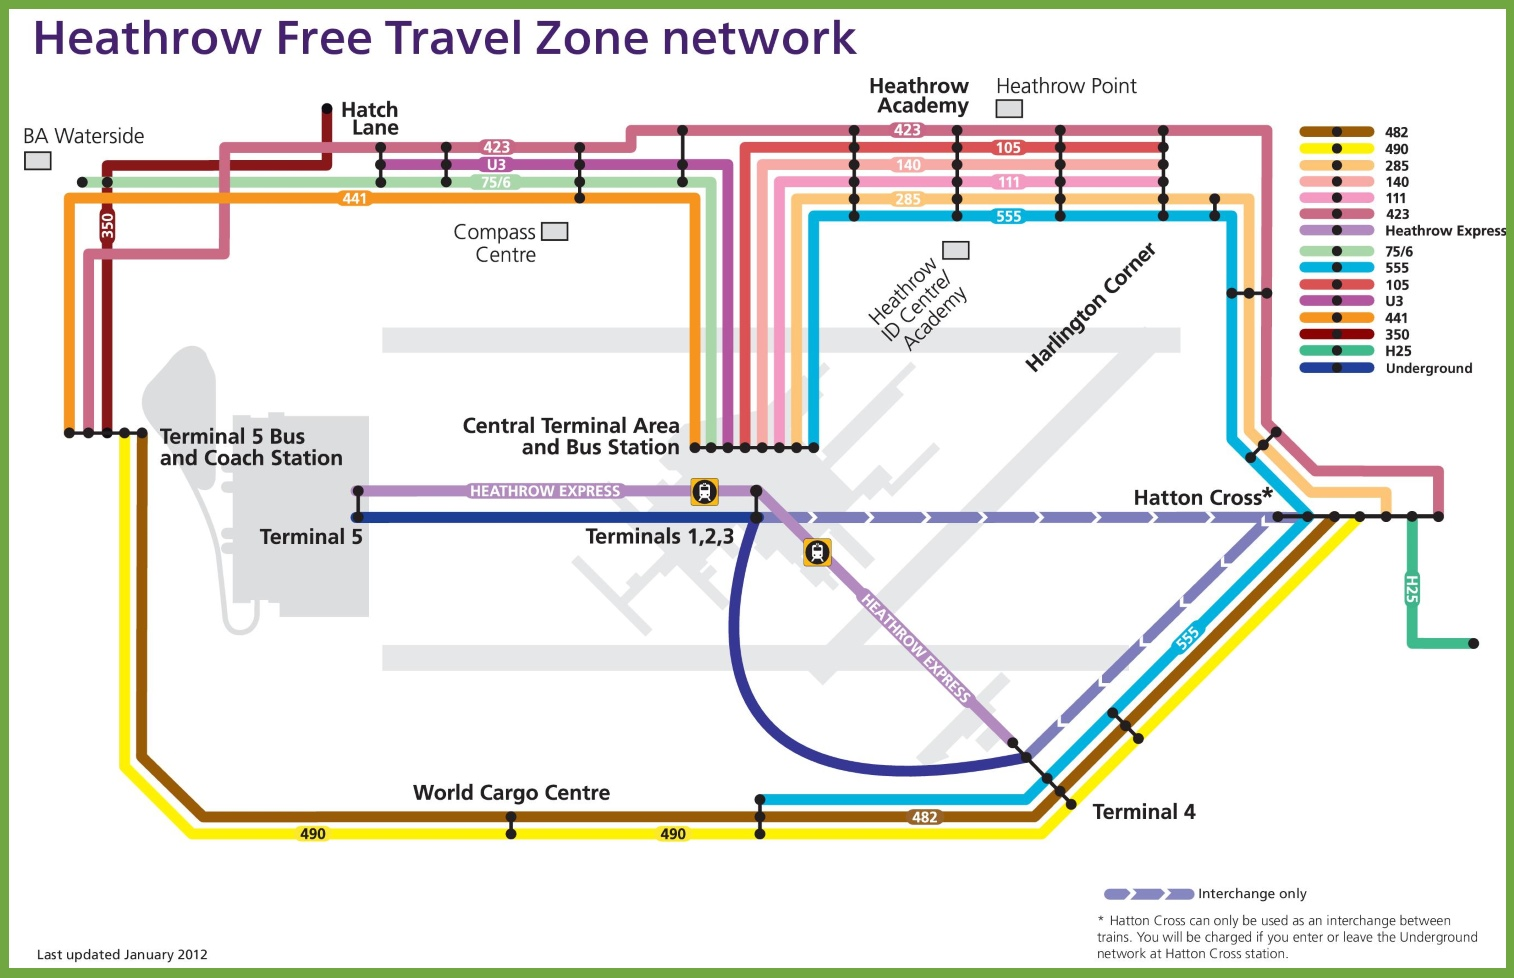 Heathrow free travel zone network map